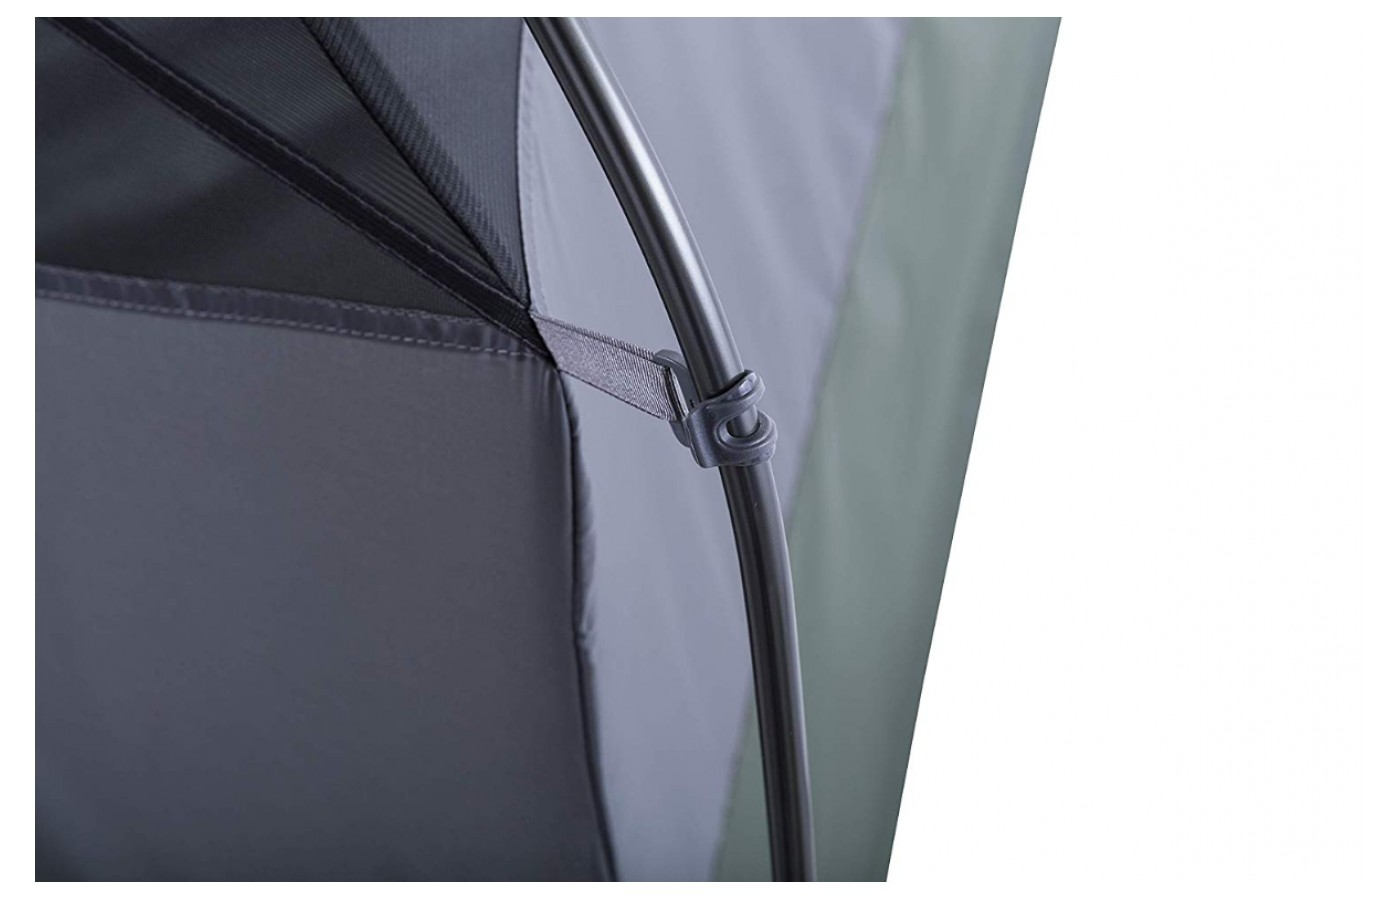 With hooking style latches from the tent to its rain fly, you won't have to struggle with siding everything through loops.